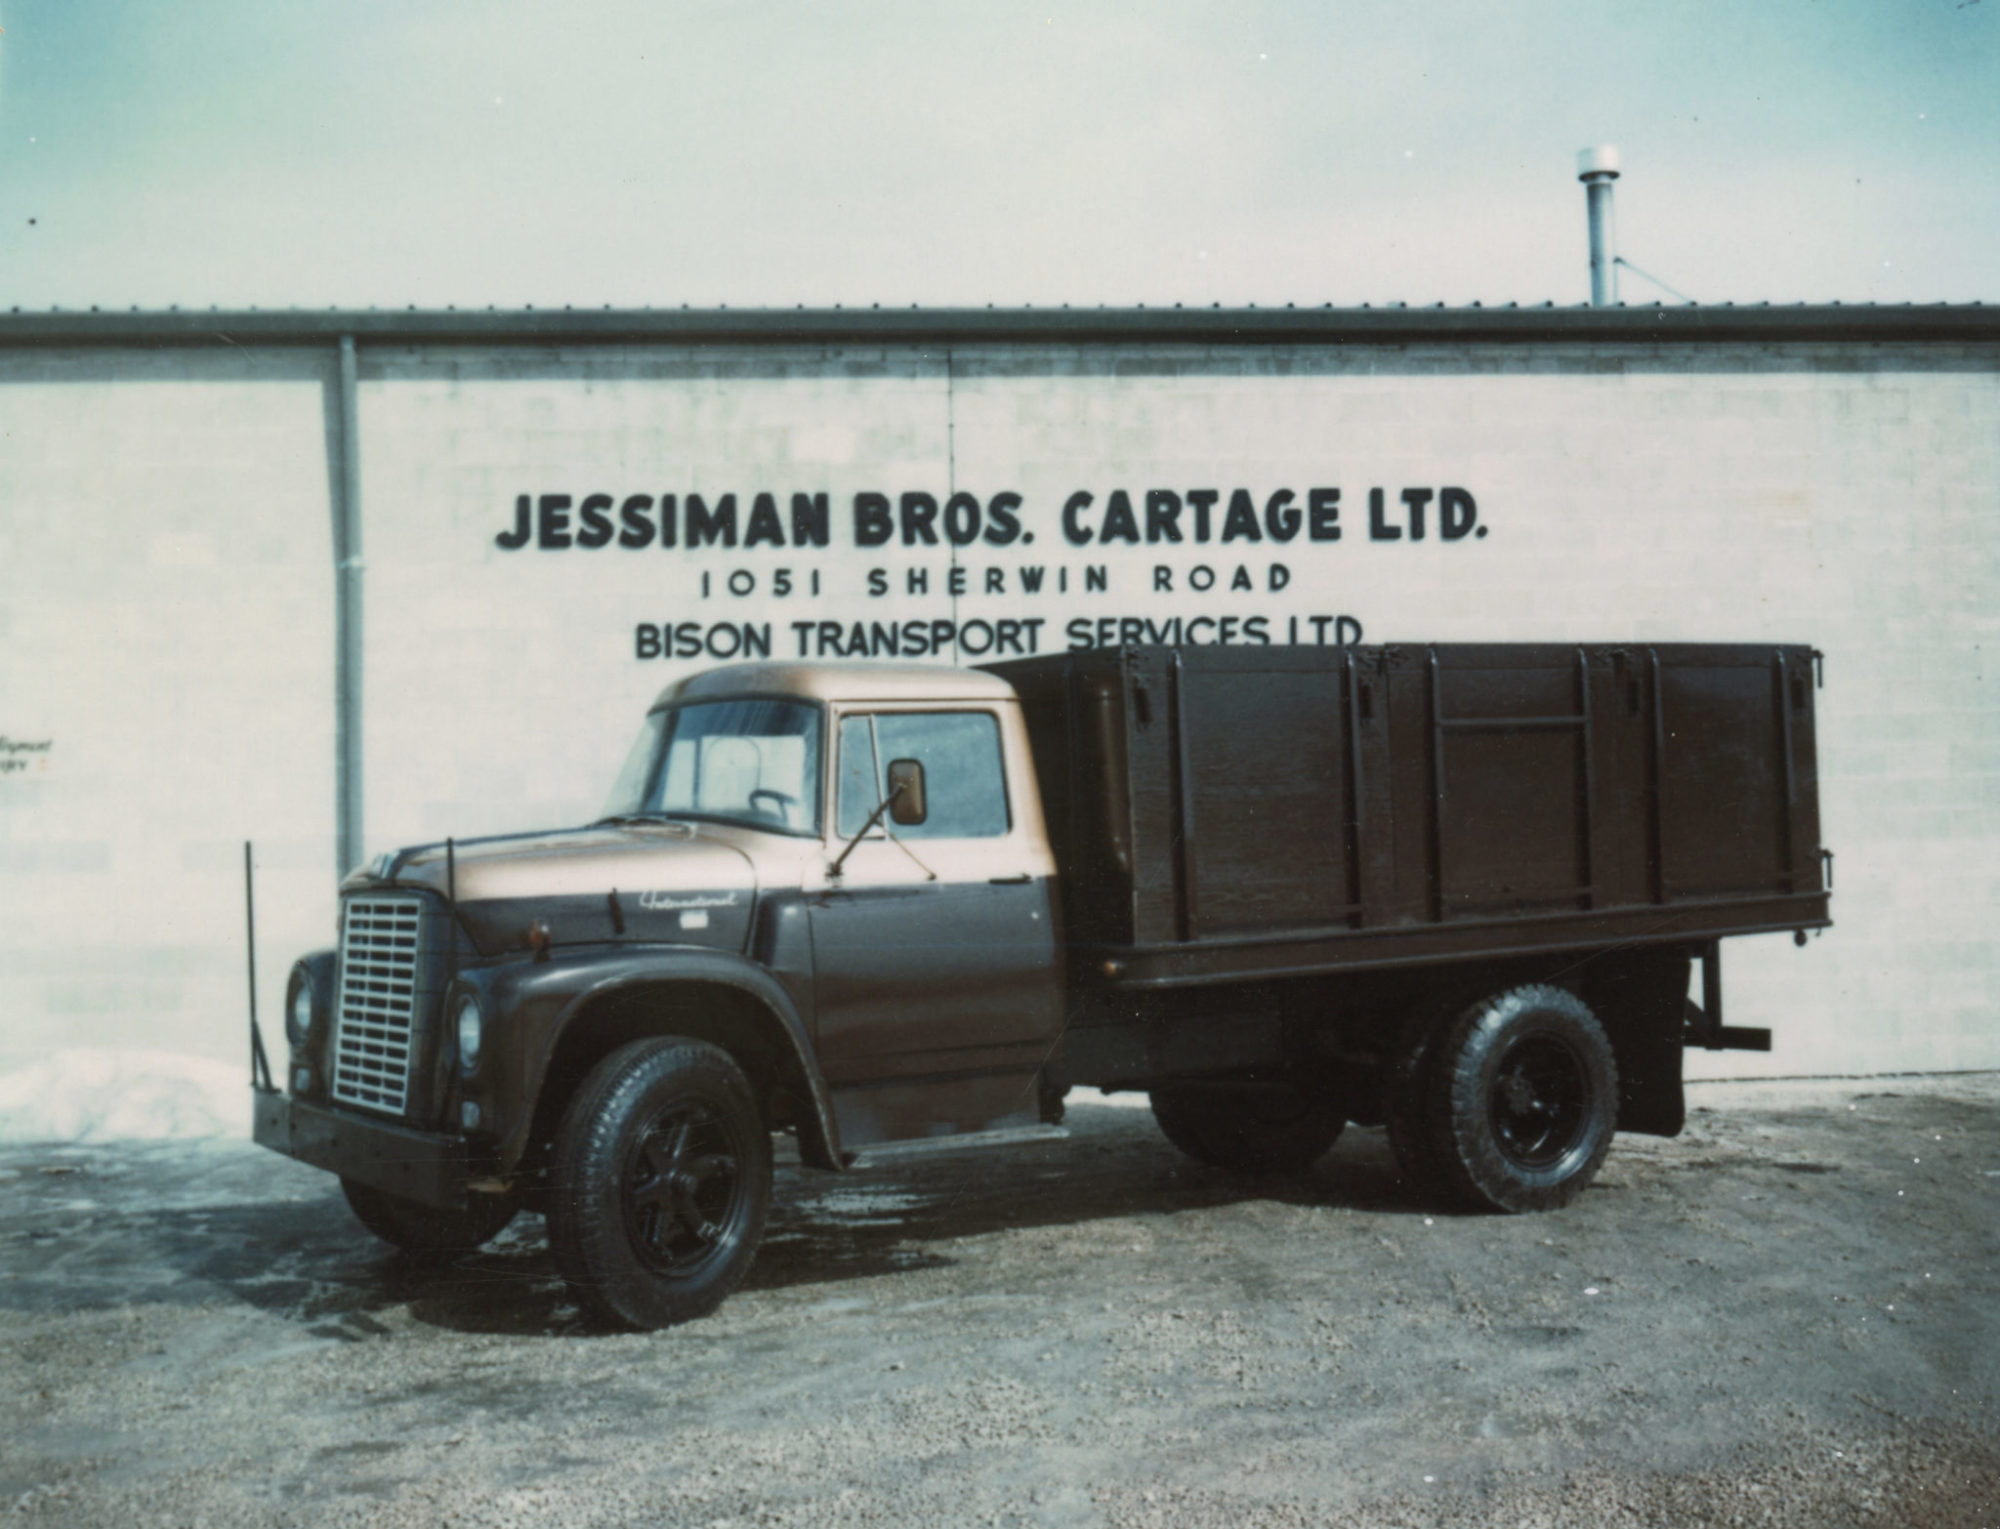 Bison Transport's first truck